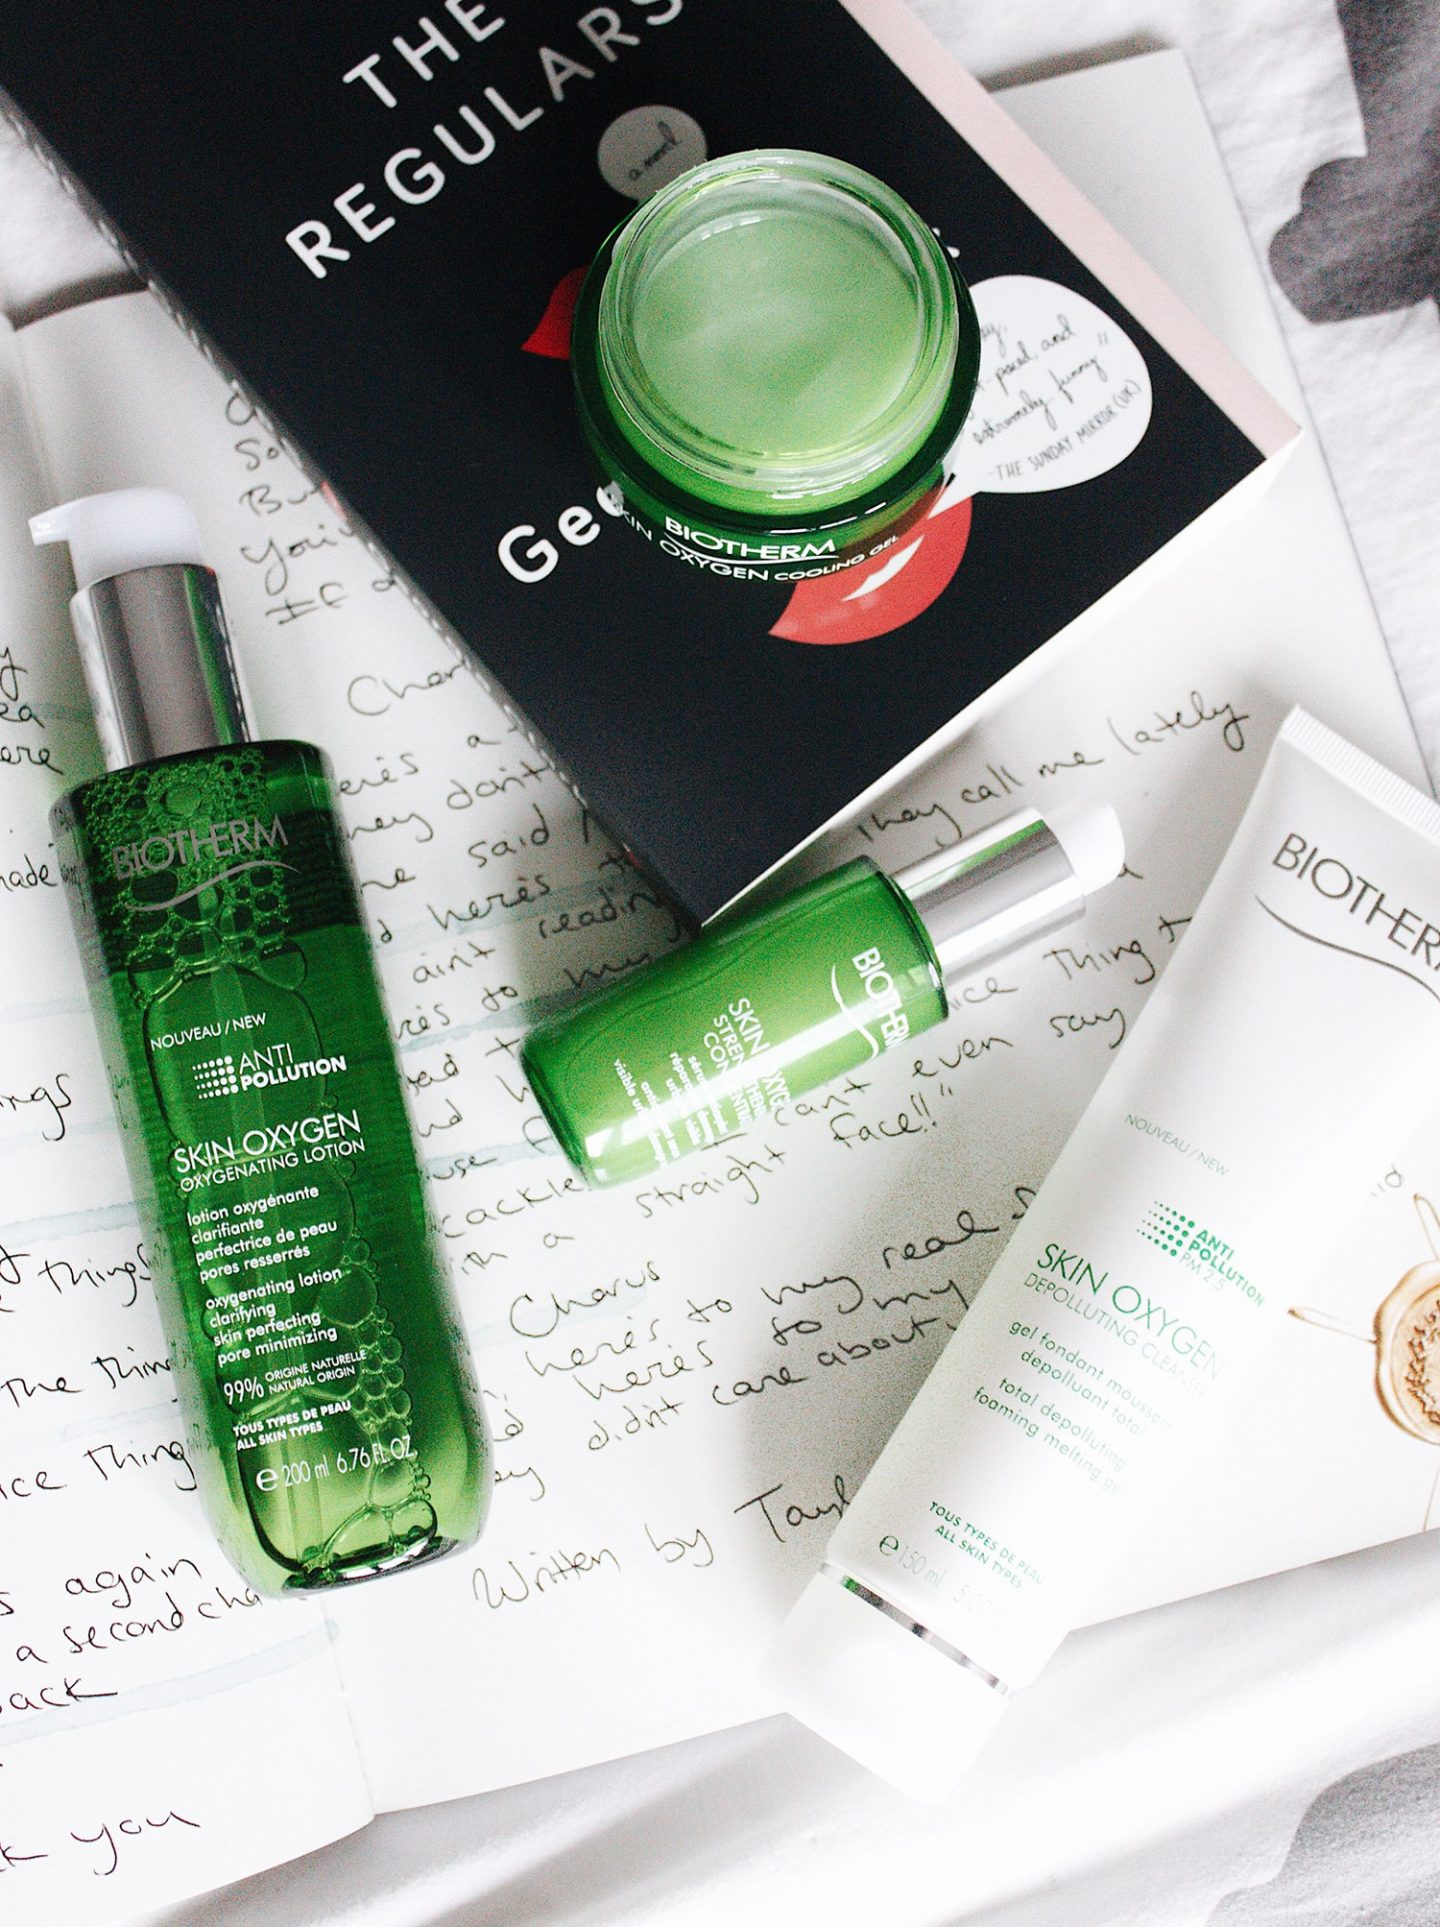 biotherm skin oxygen review